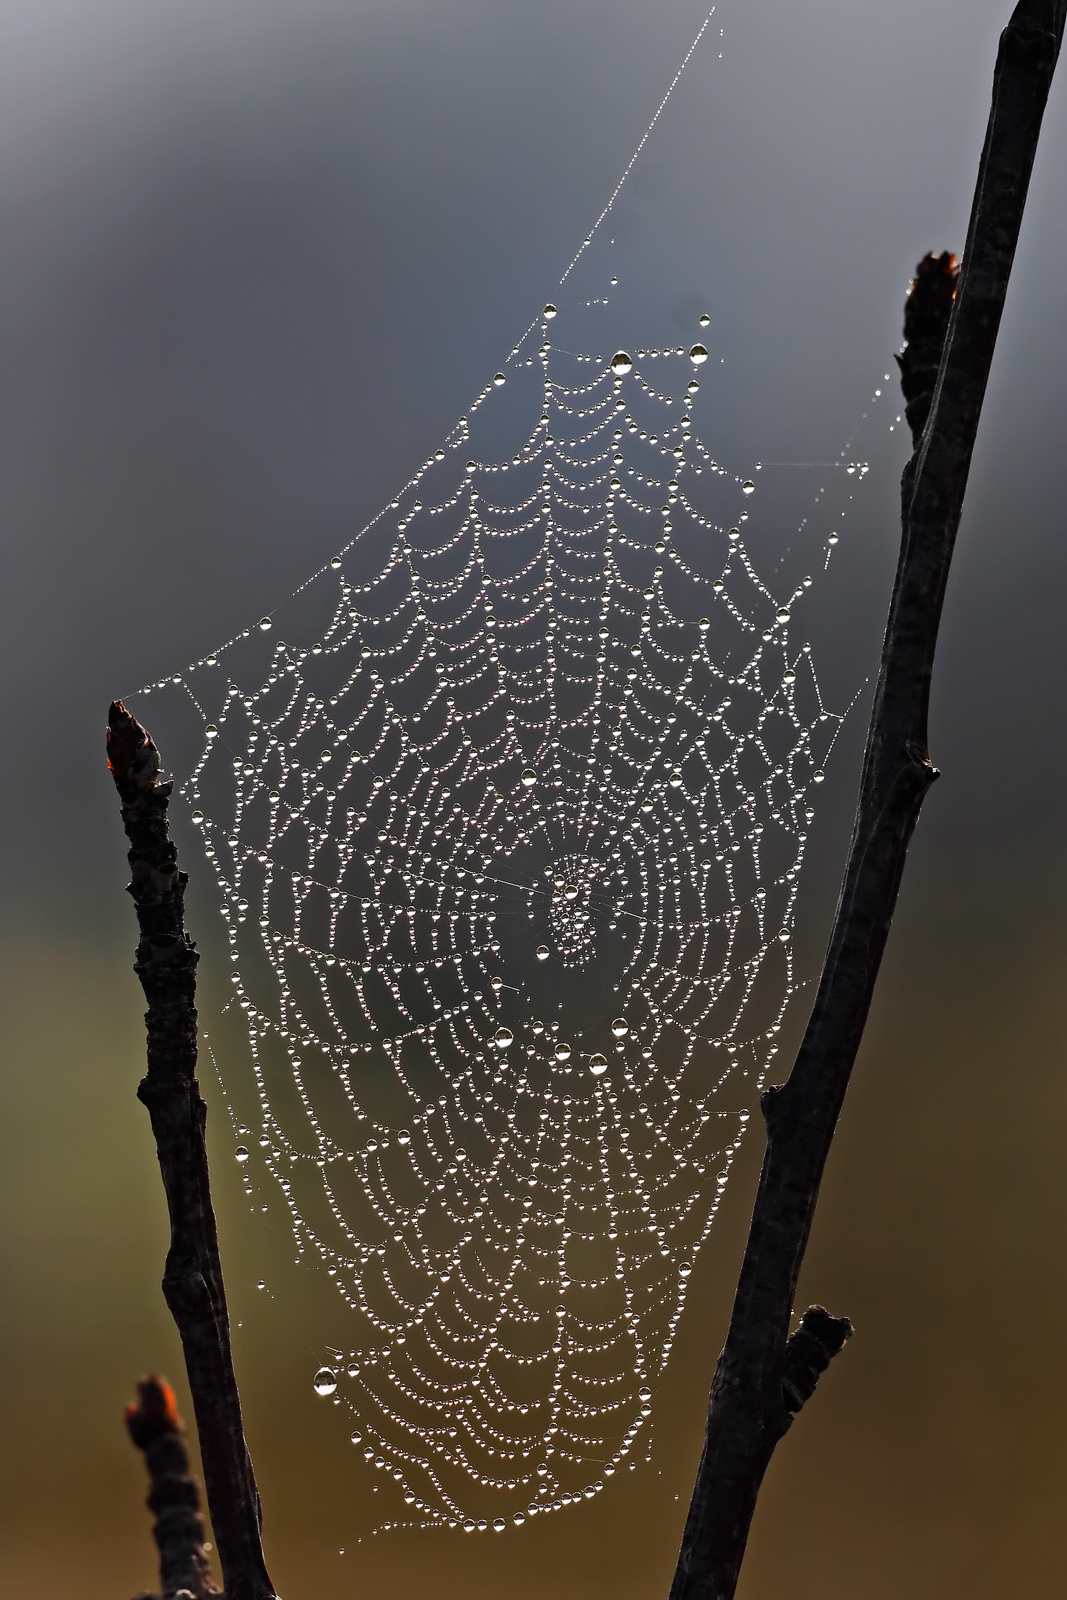 Filespider Web With Dew Dropsjpg  Wikimedia Commons